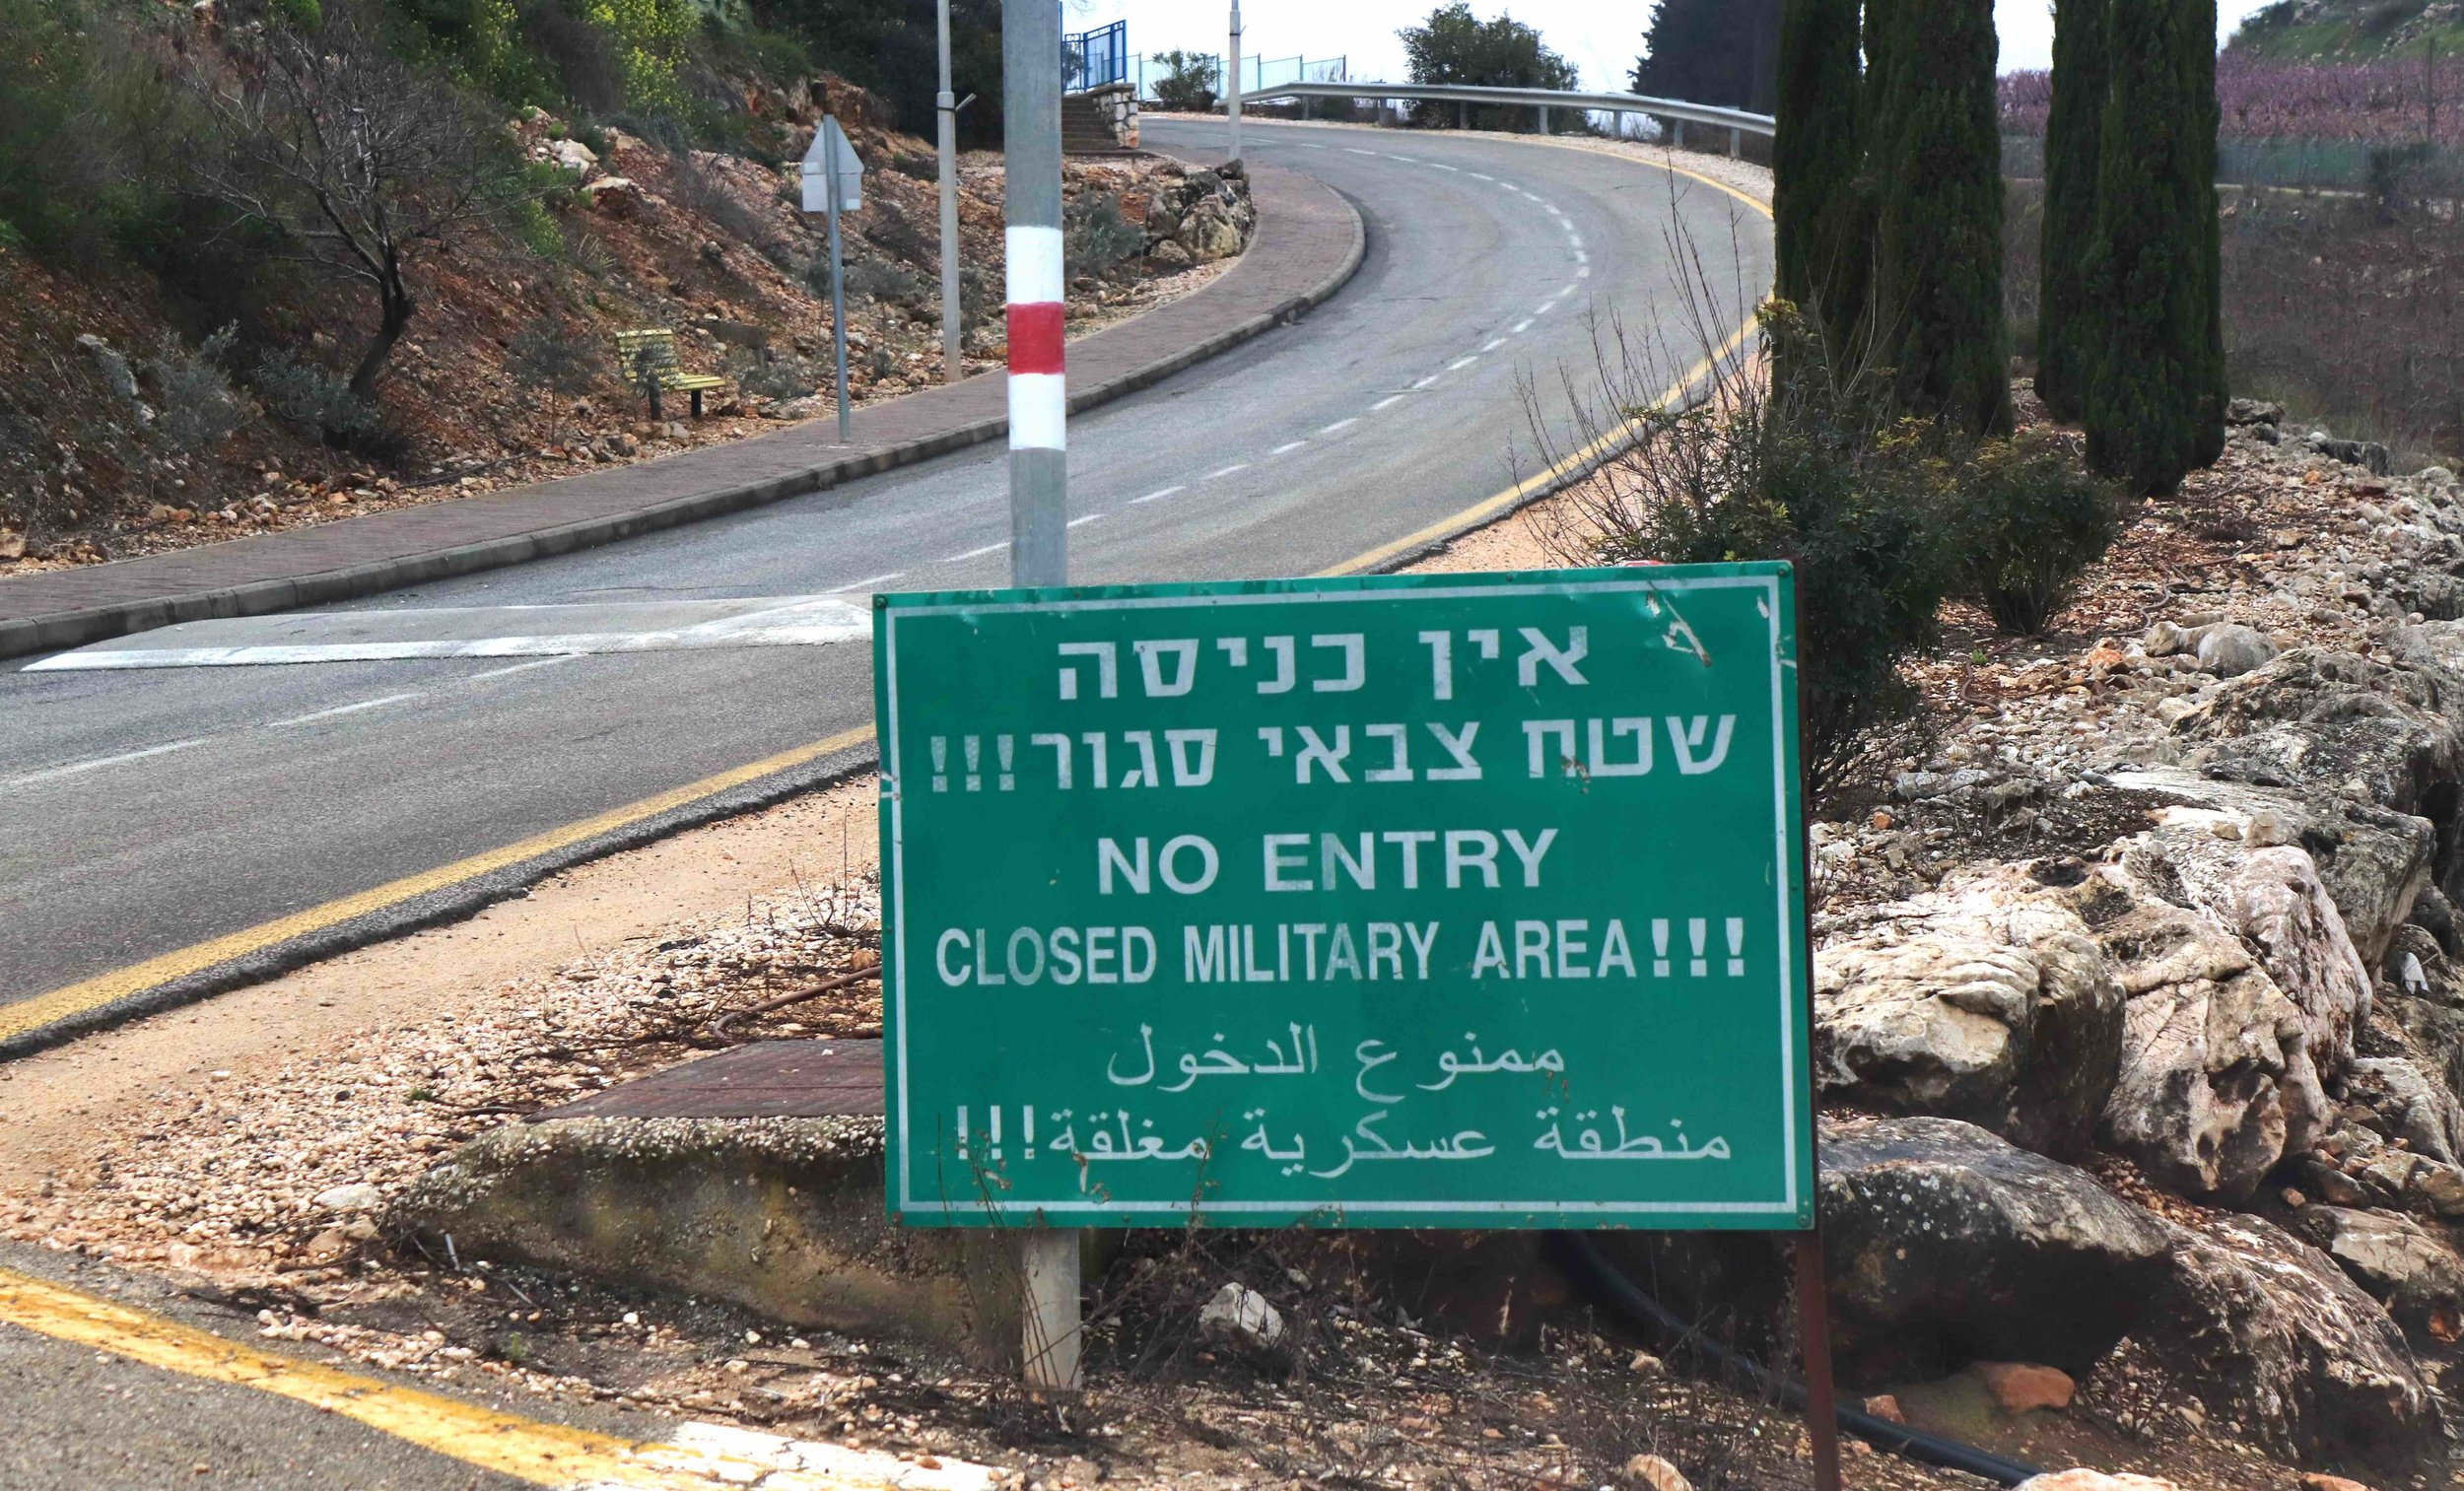 Israeli Defense Forces fortifications are nearby and civilians are limited on where they can go,